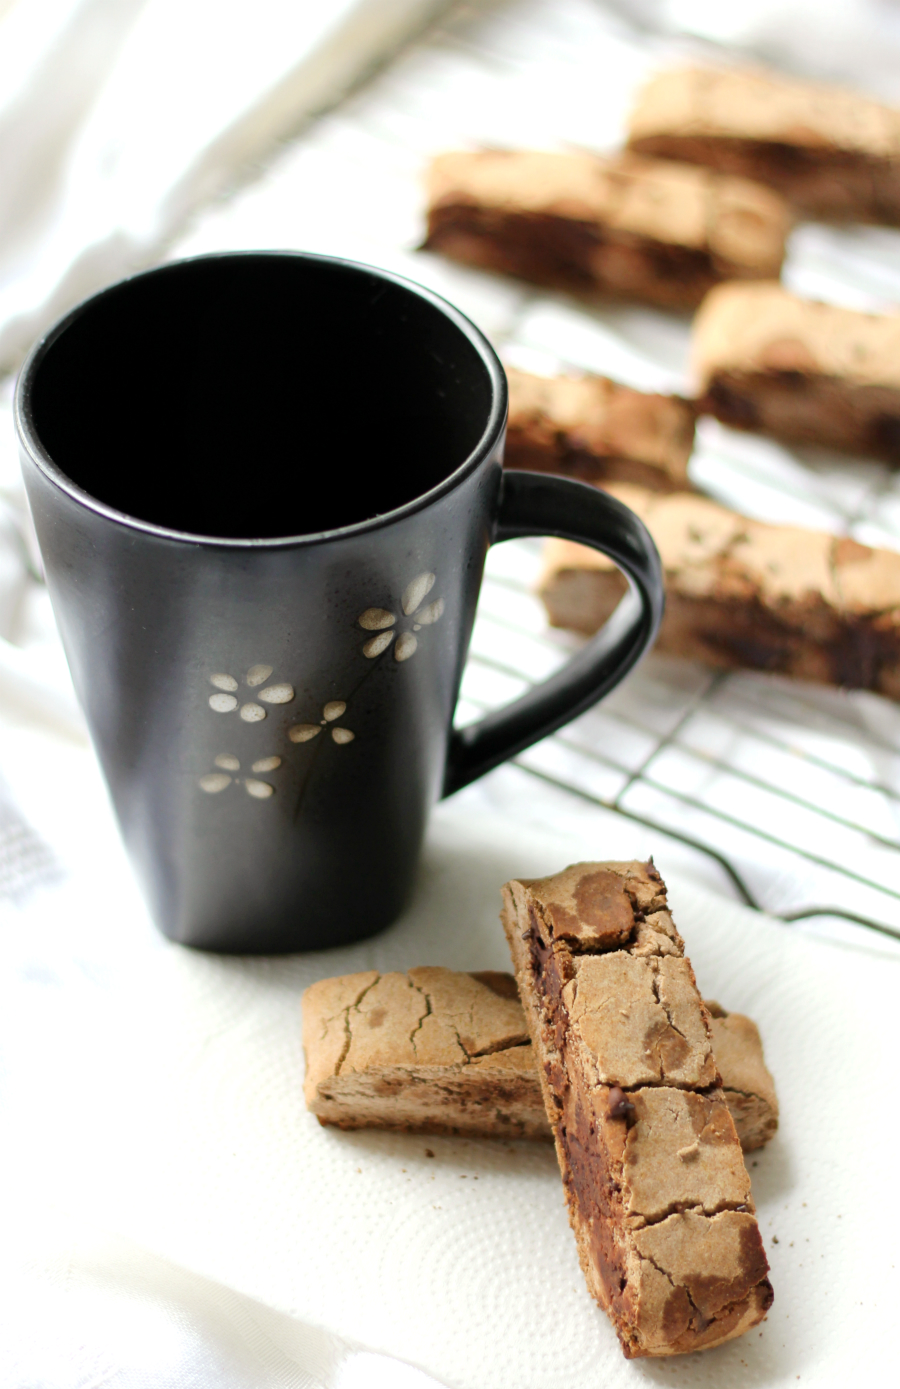 Chocolate Chip Teff Biscotti | Strength and Sunshine @RebeccaGF666 Grab your cup of coffee and a Chocolate Chip Teff Biscotti for a few moments of at-home bakery bliss! A gluten-free, nut-free, allergy-free, and vegan healthy recipe so you can enjoy this Italian classic once again without sacrificing flavor or crunch!